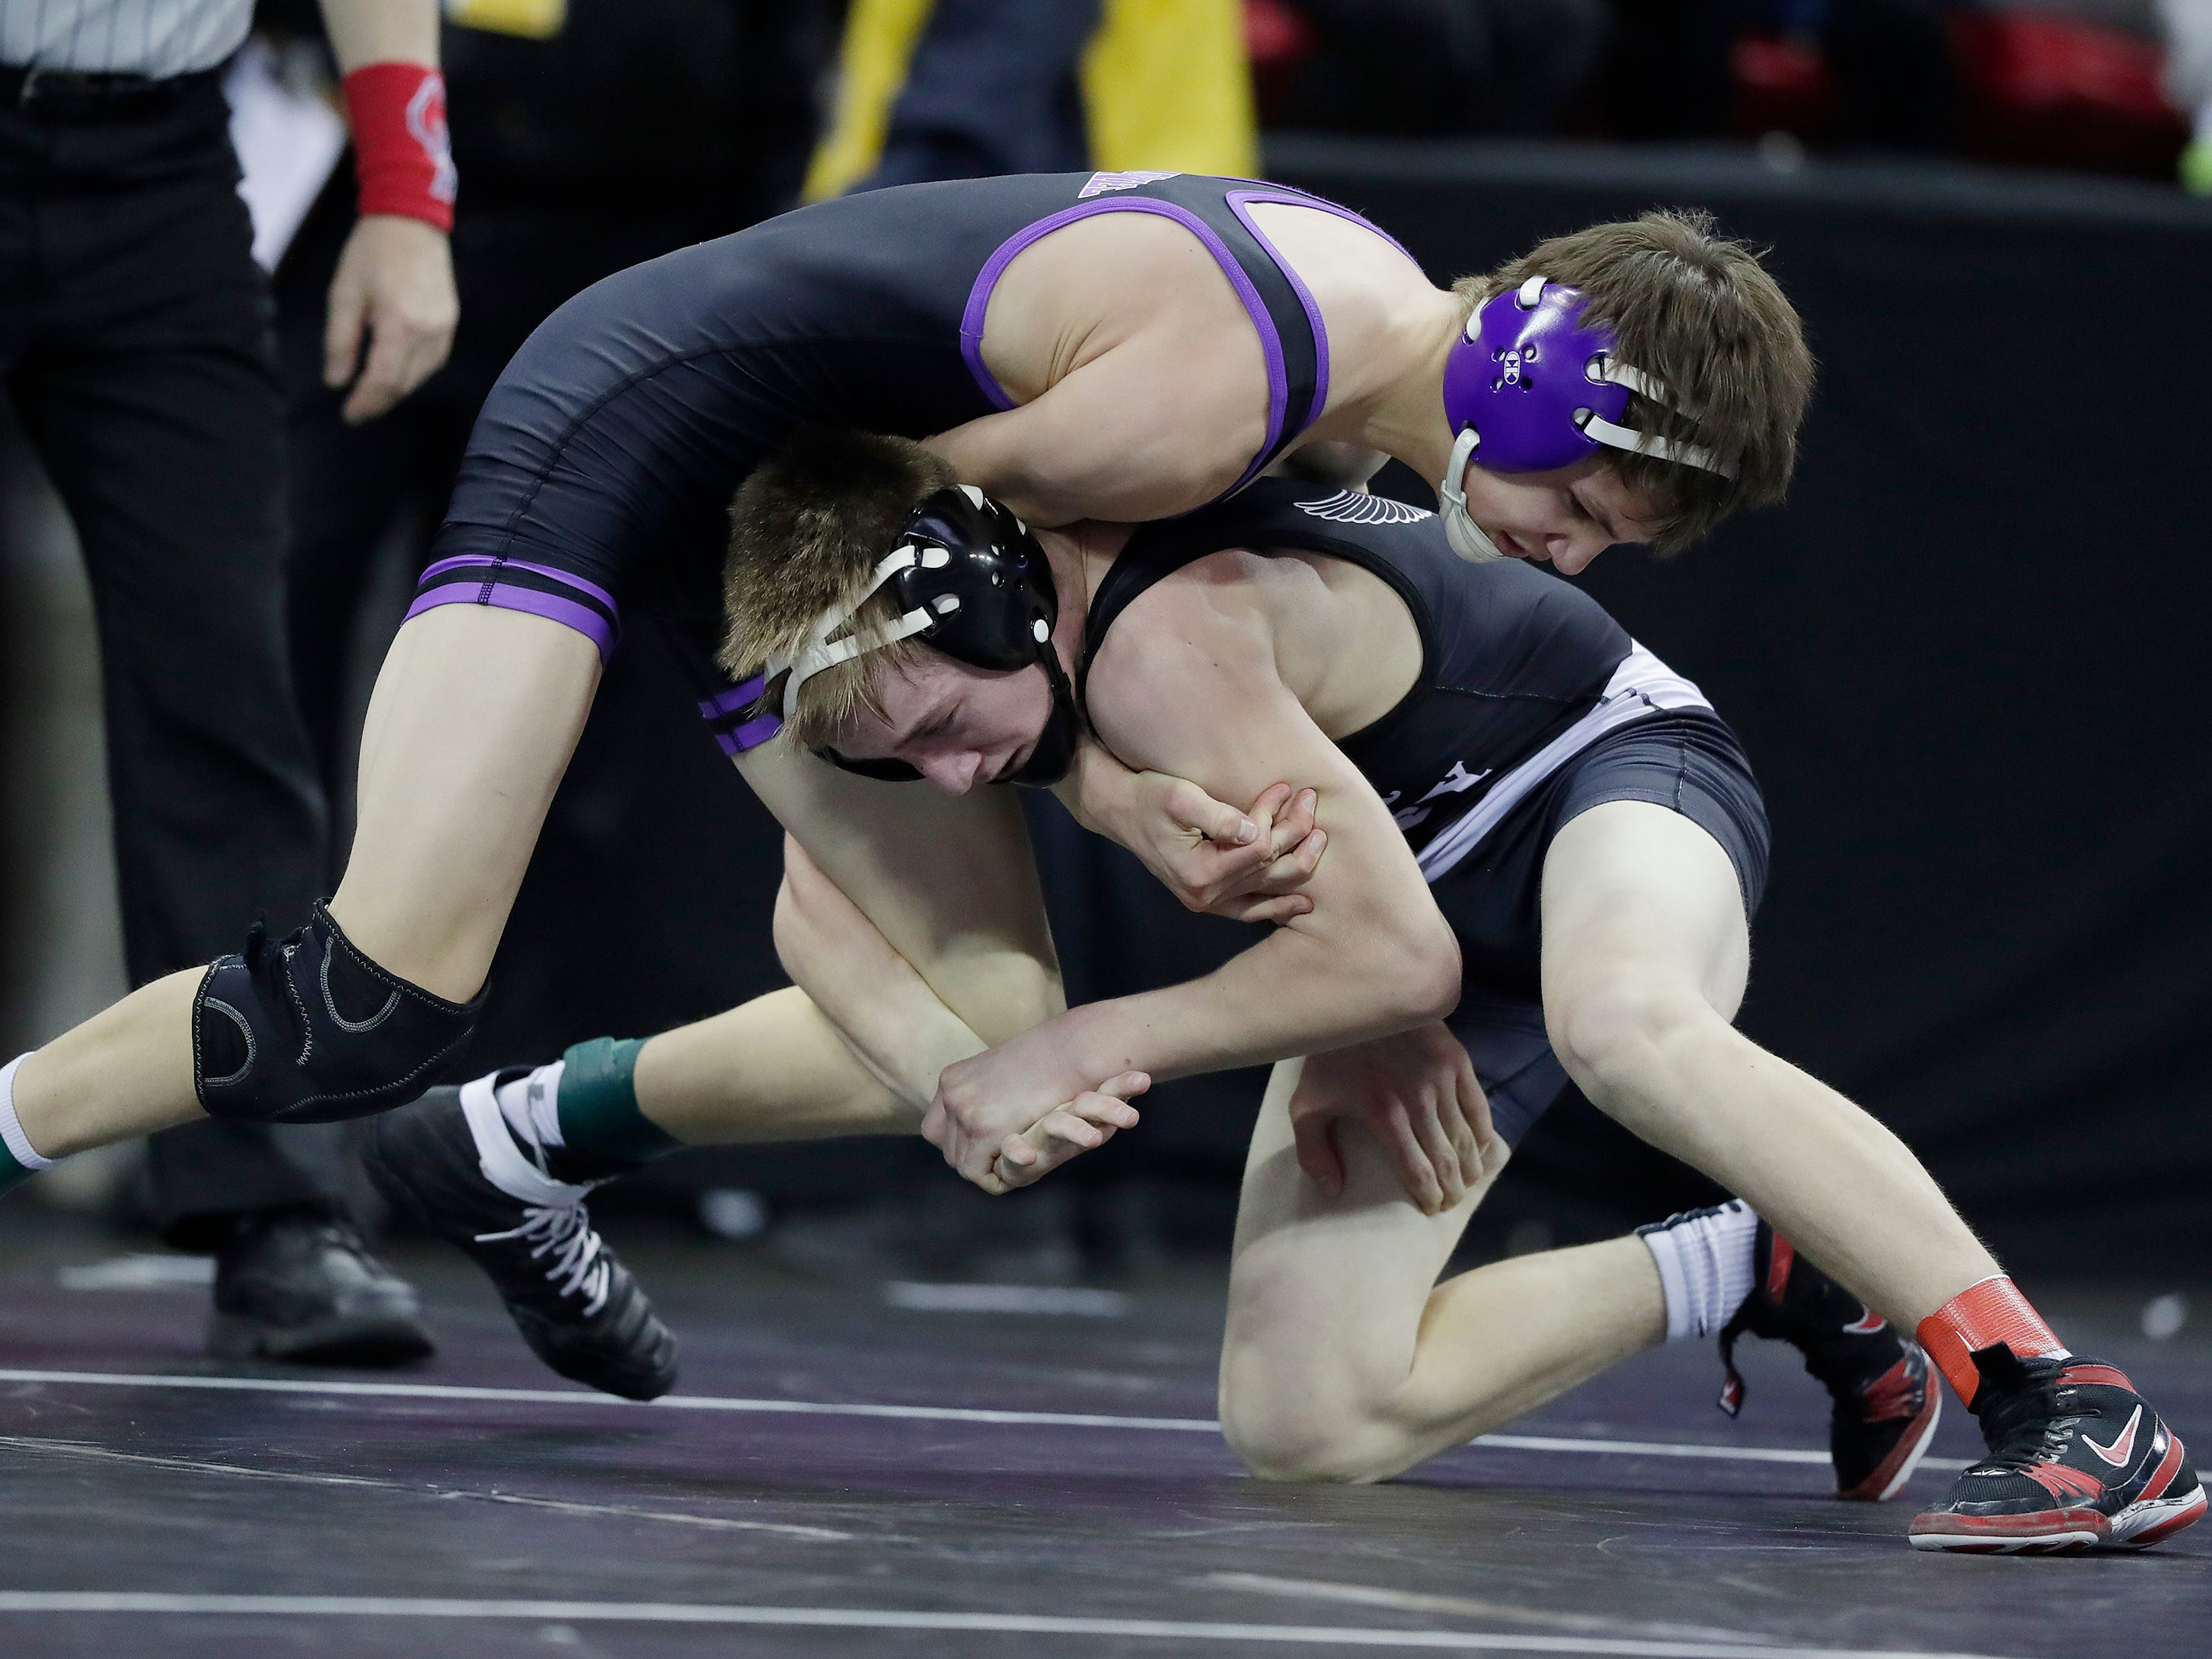 Mosinee's Chase Kmosena wrestles River Valley's Jimmy Jennings in a Division 2 113-pound preliminary match at the WIAA state individual wrestling tournament at the Kohl Center on Thursday, February 21, 2019 in Madison, Wis.